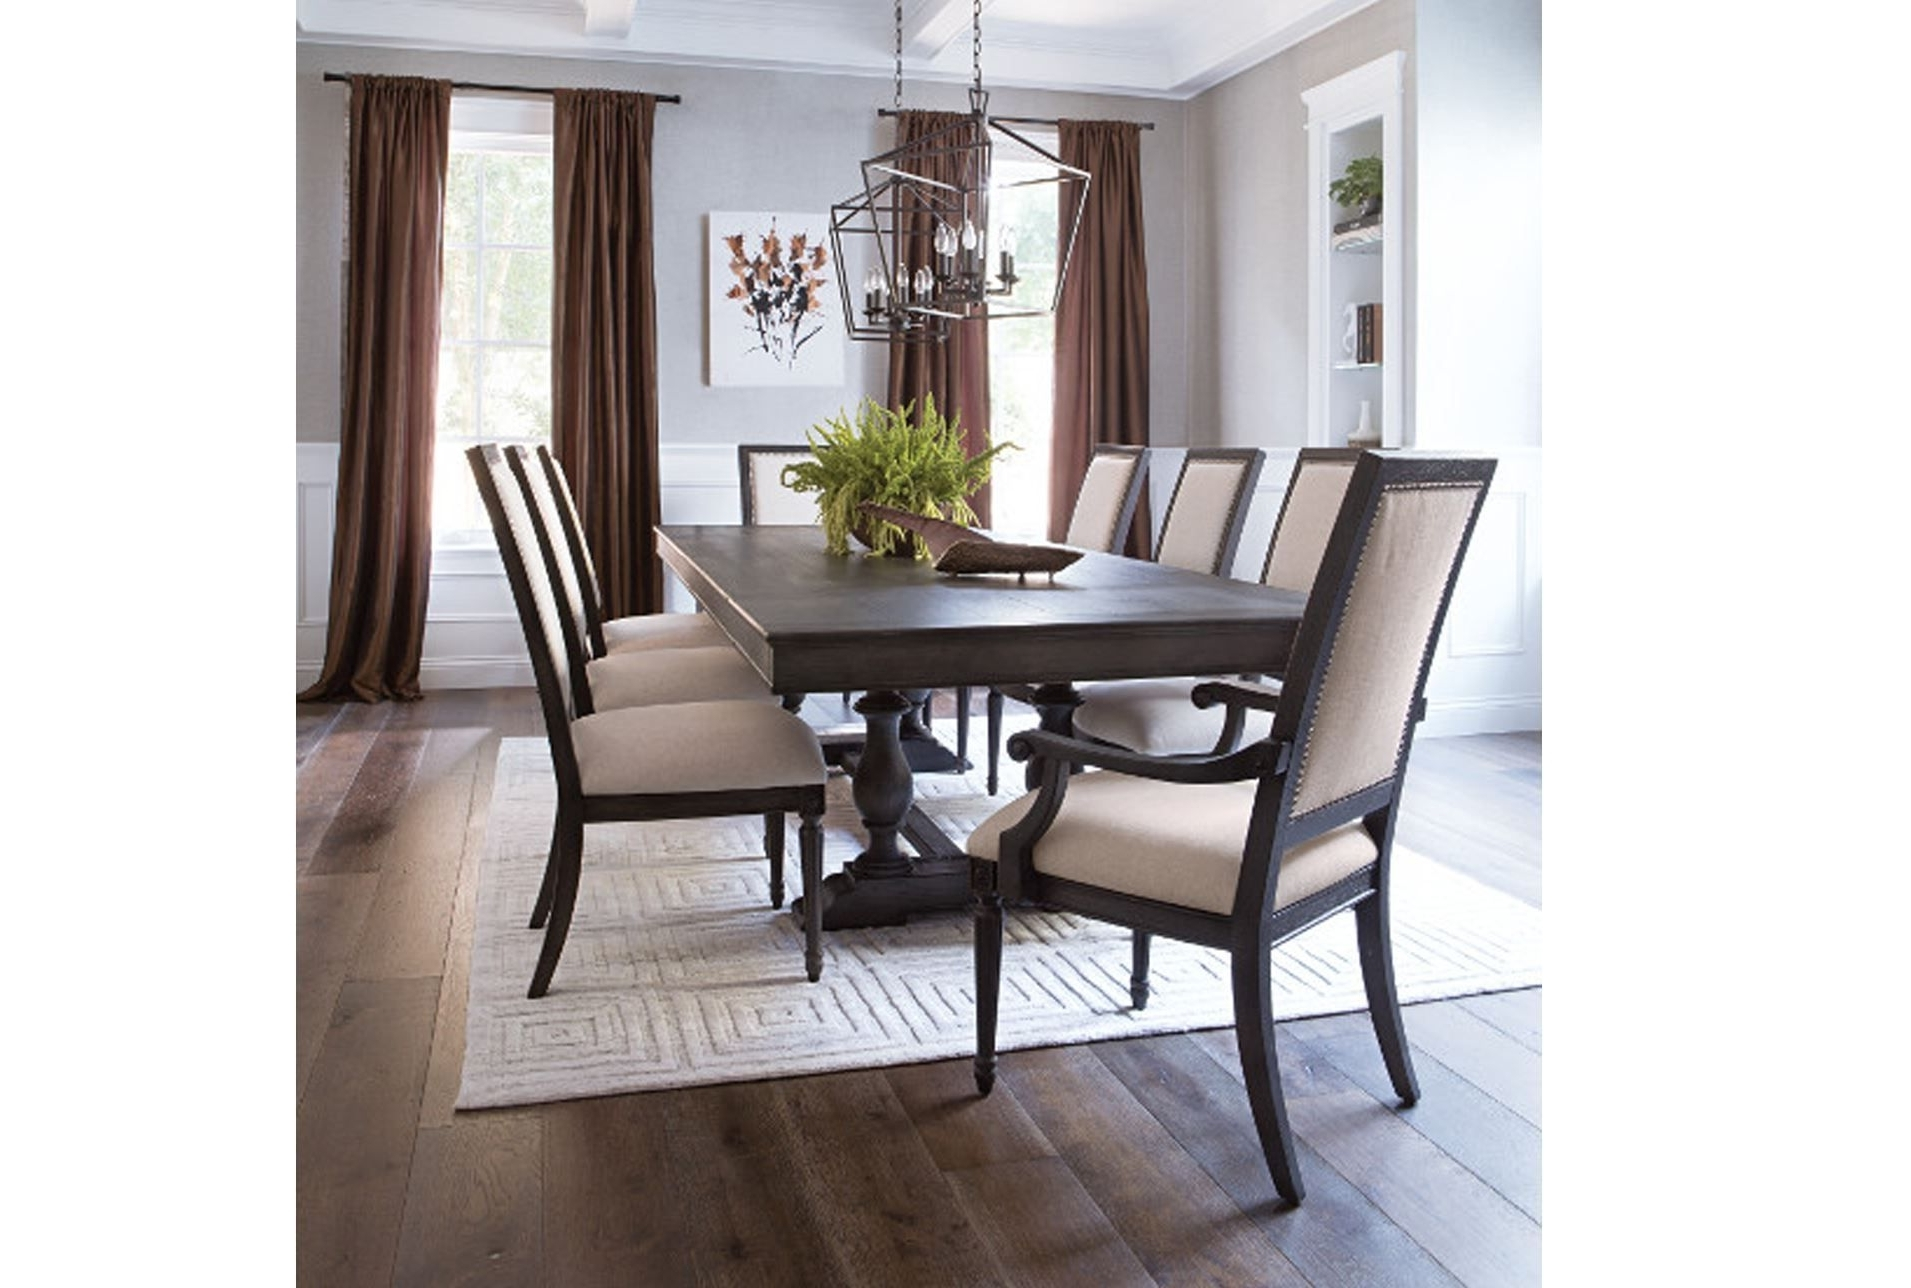 Chapleau 9 Piece Extension Dining Set, Off White With Regard To Fashionable Chapleau Side Chairs (View 2 of 20)